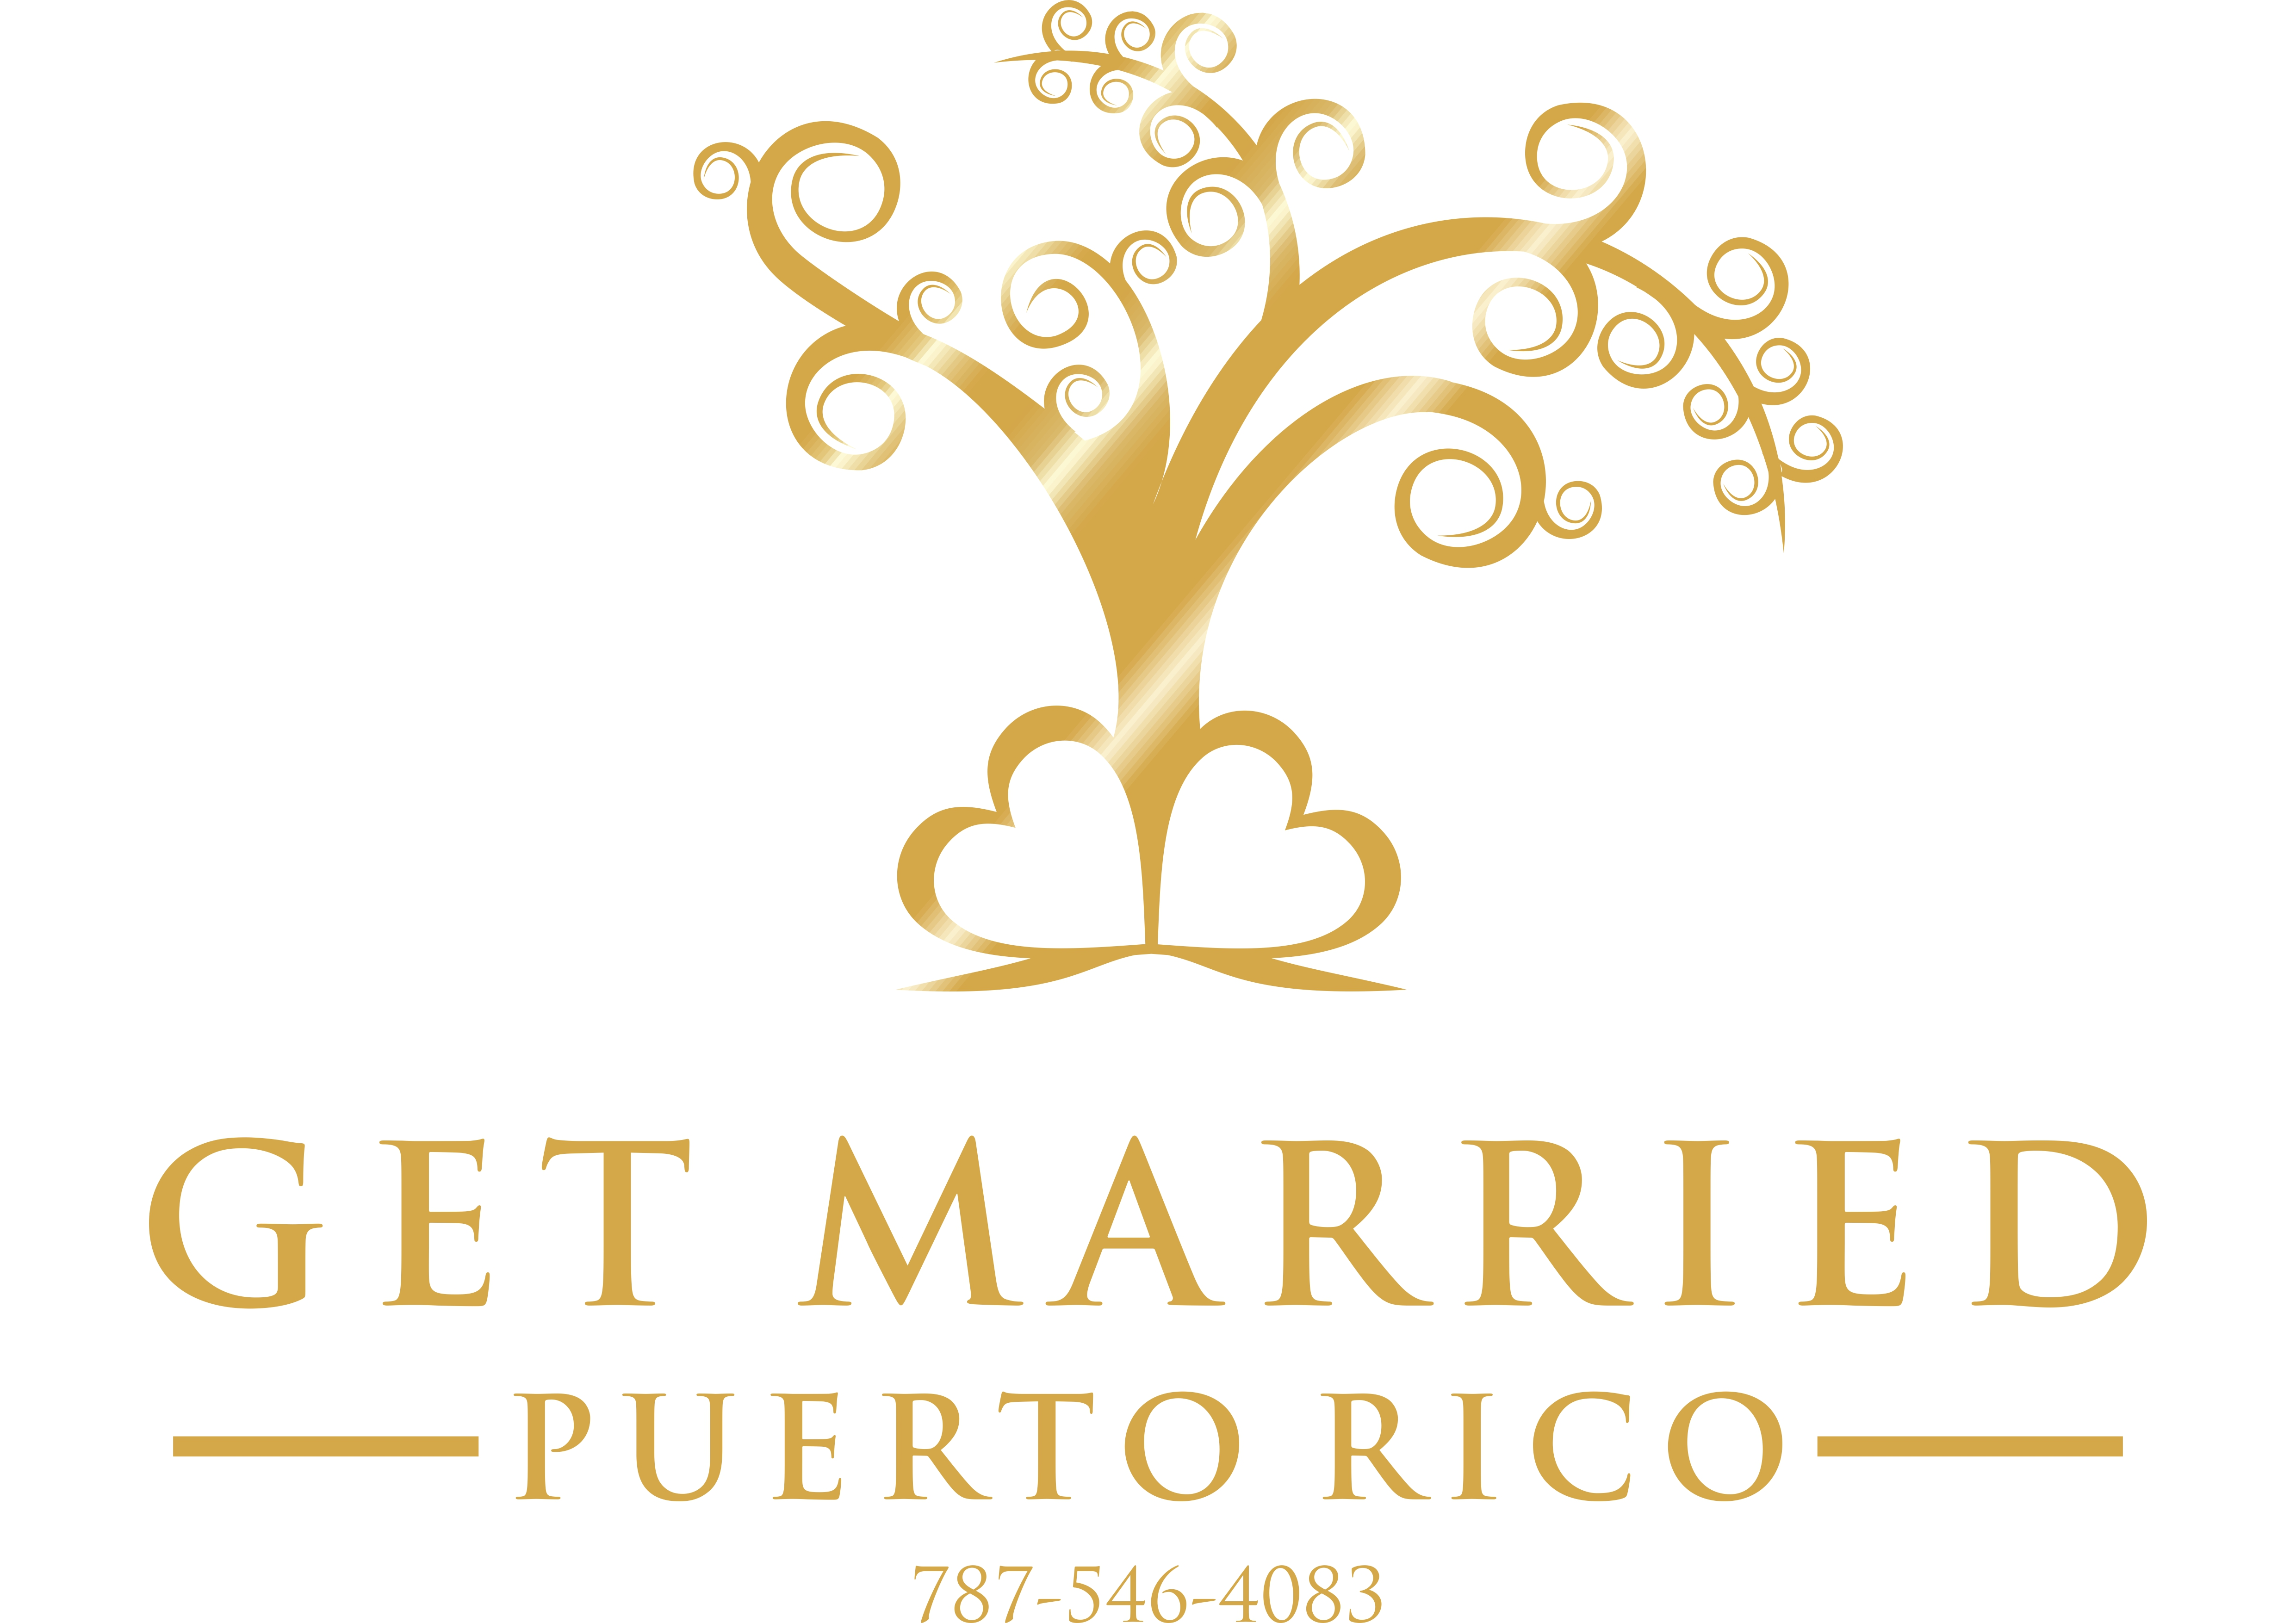 Get Married Puerto Rico